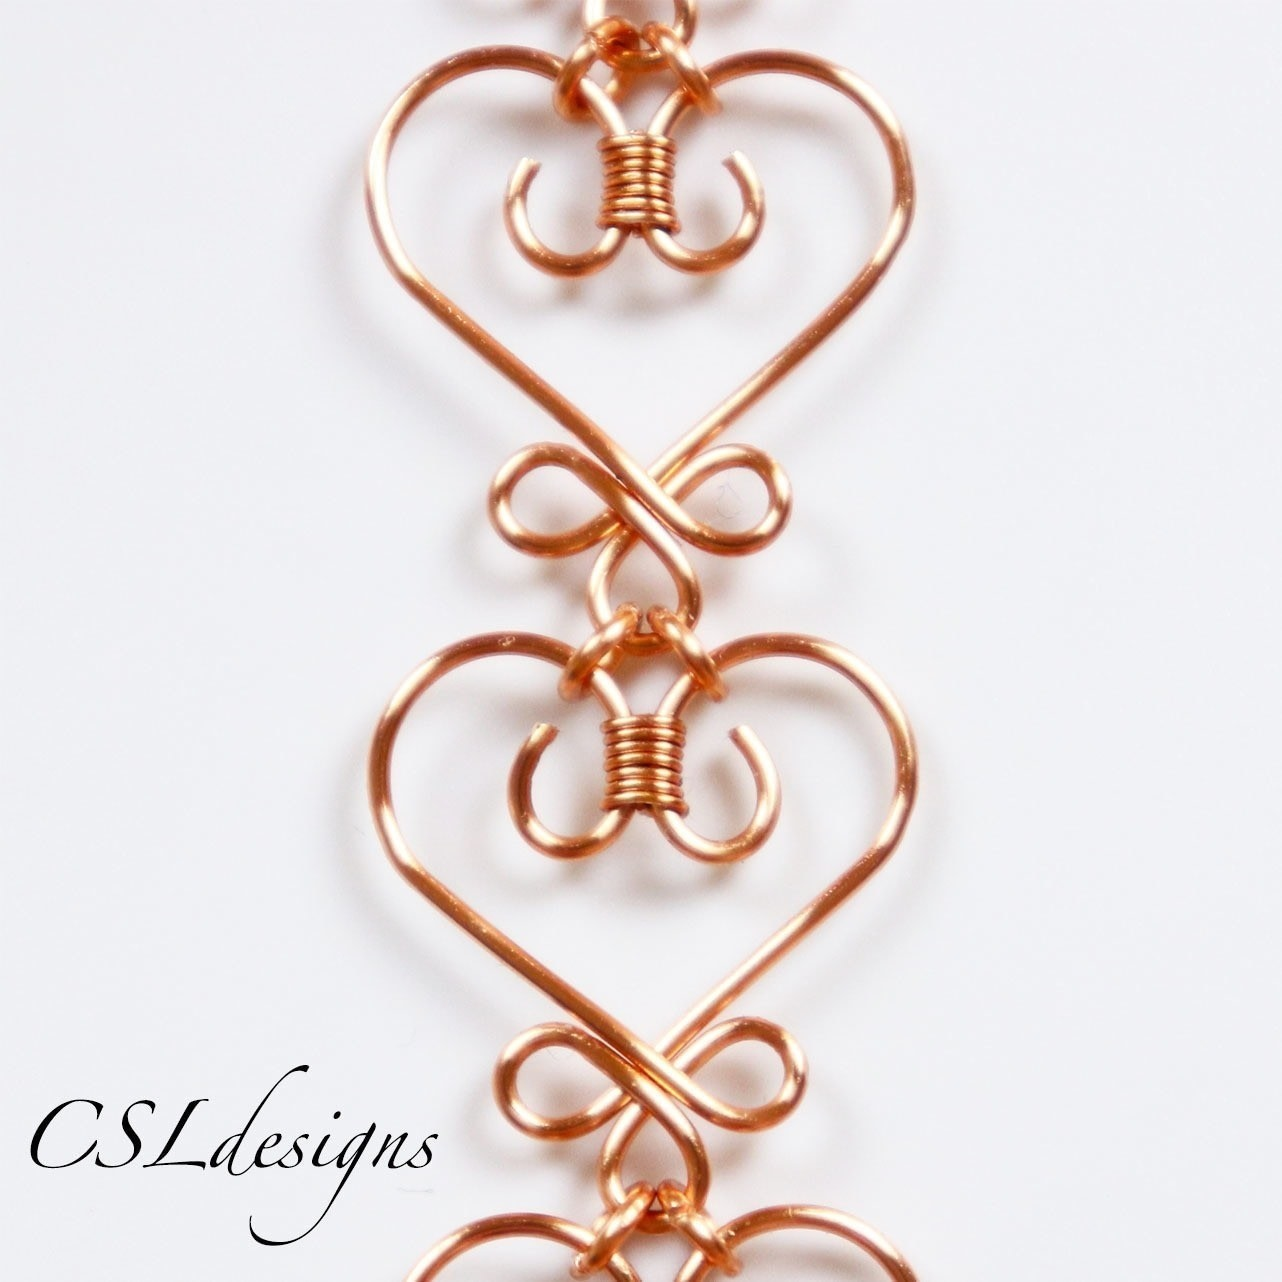 Celtic wirework heart how to make a wire wrapped pendant jewelry make celtic wirework heart chain links free tutorial with pictures on how to make a mozeypictures Choice Image